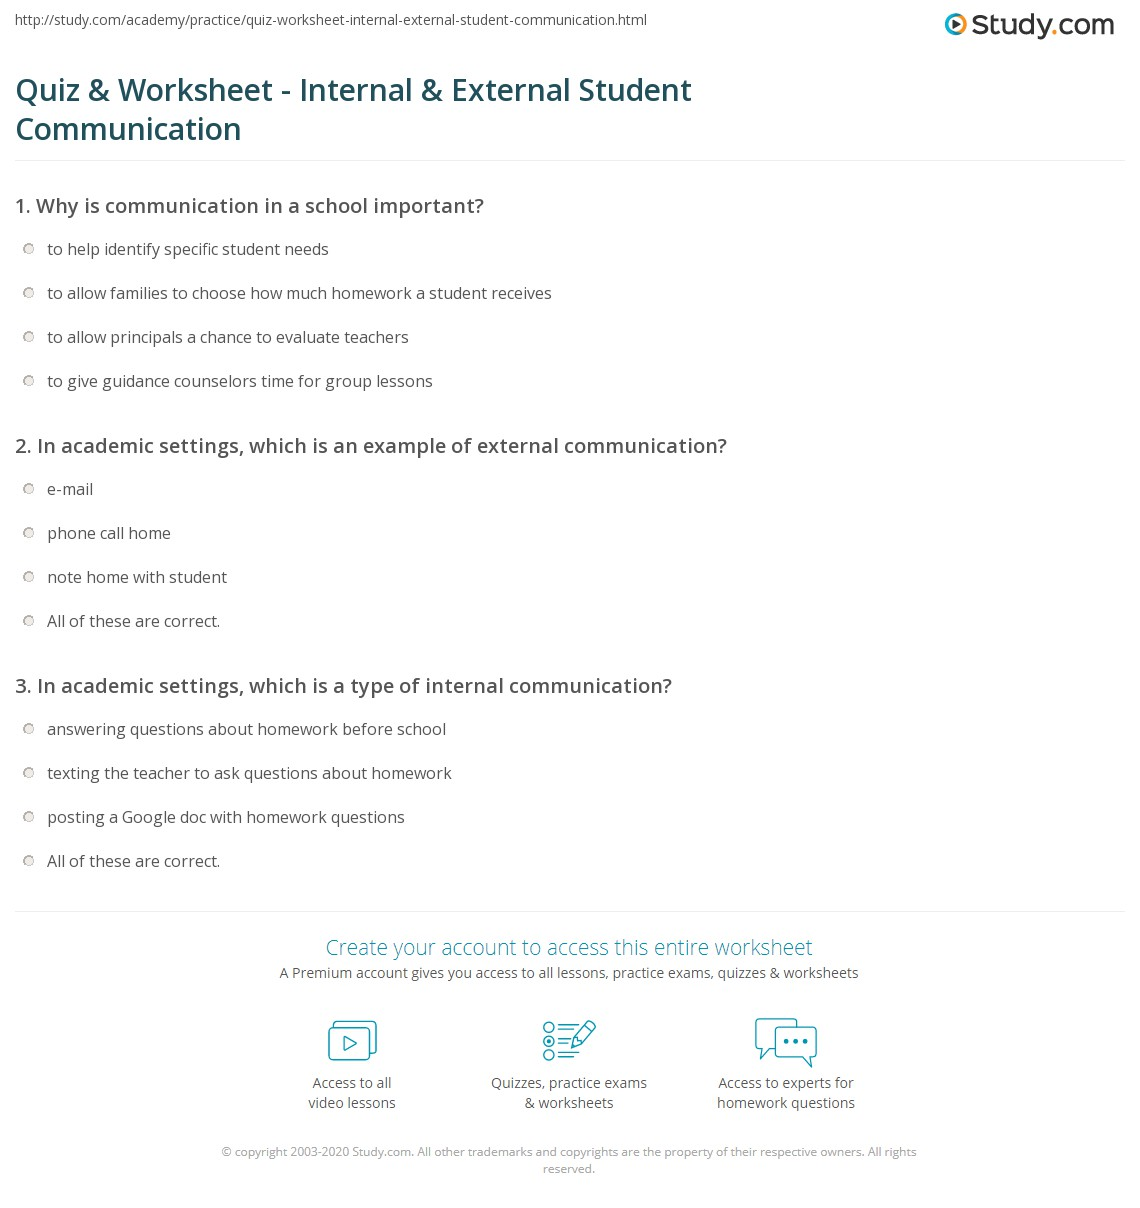 Quiz & Worksheet - Internal & External Student Communication | Study com